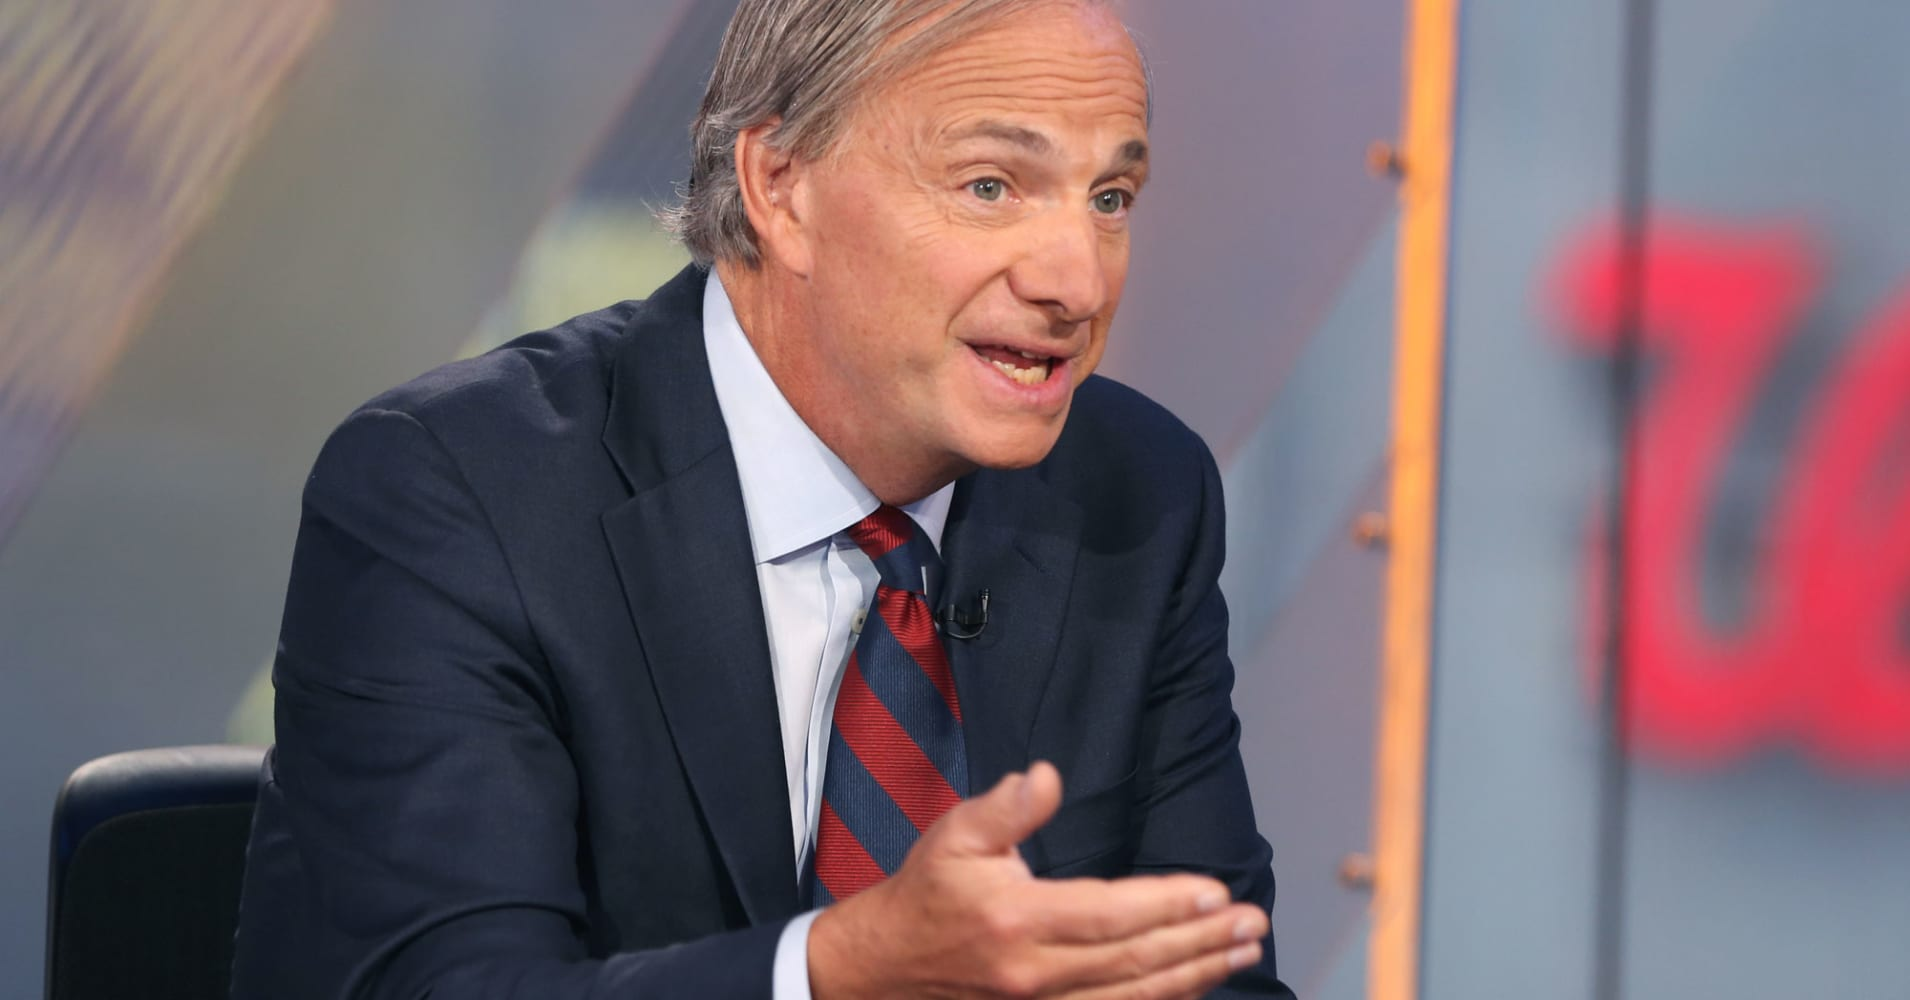 Hedge fund king Ray Dalio: Middle class needs 'wealth transfers' to bridge income gap